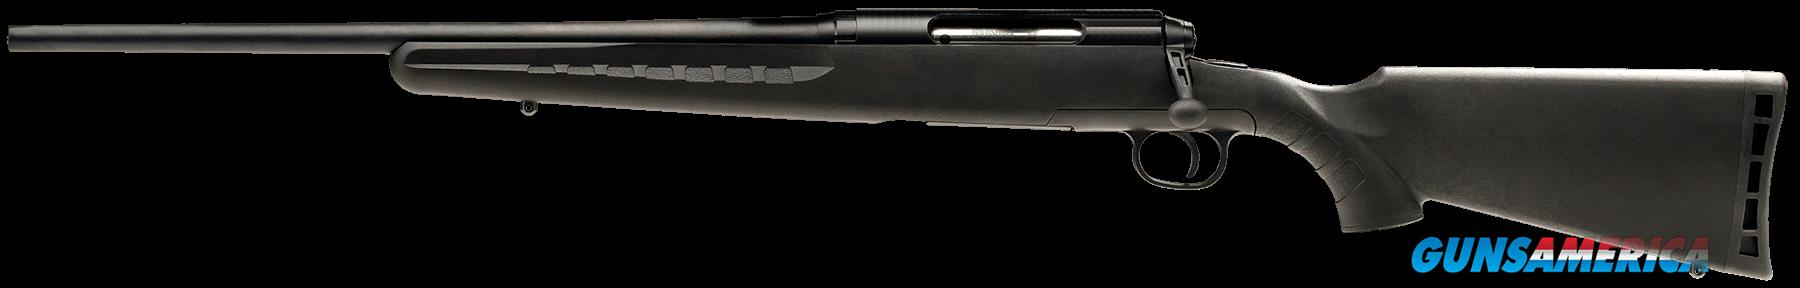 "Savage 19644 Axis LH Bolt 243 Winchester 22"" 4+1 Synthetic Black Stk Blued  Guns > Rifles > Savage Rifles > Standard Bolt Action > Sporting"